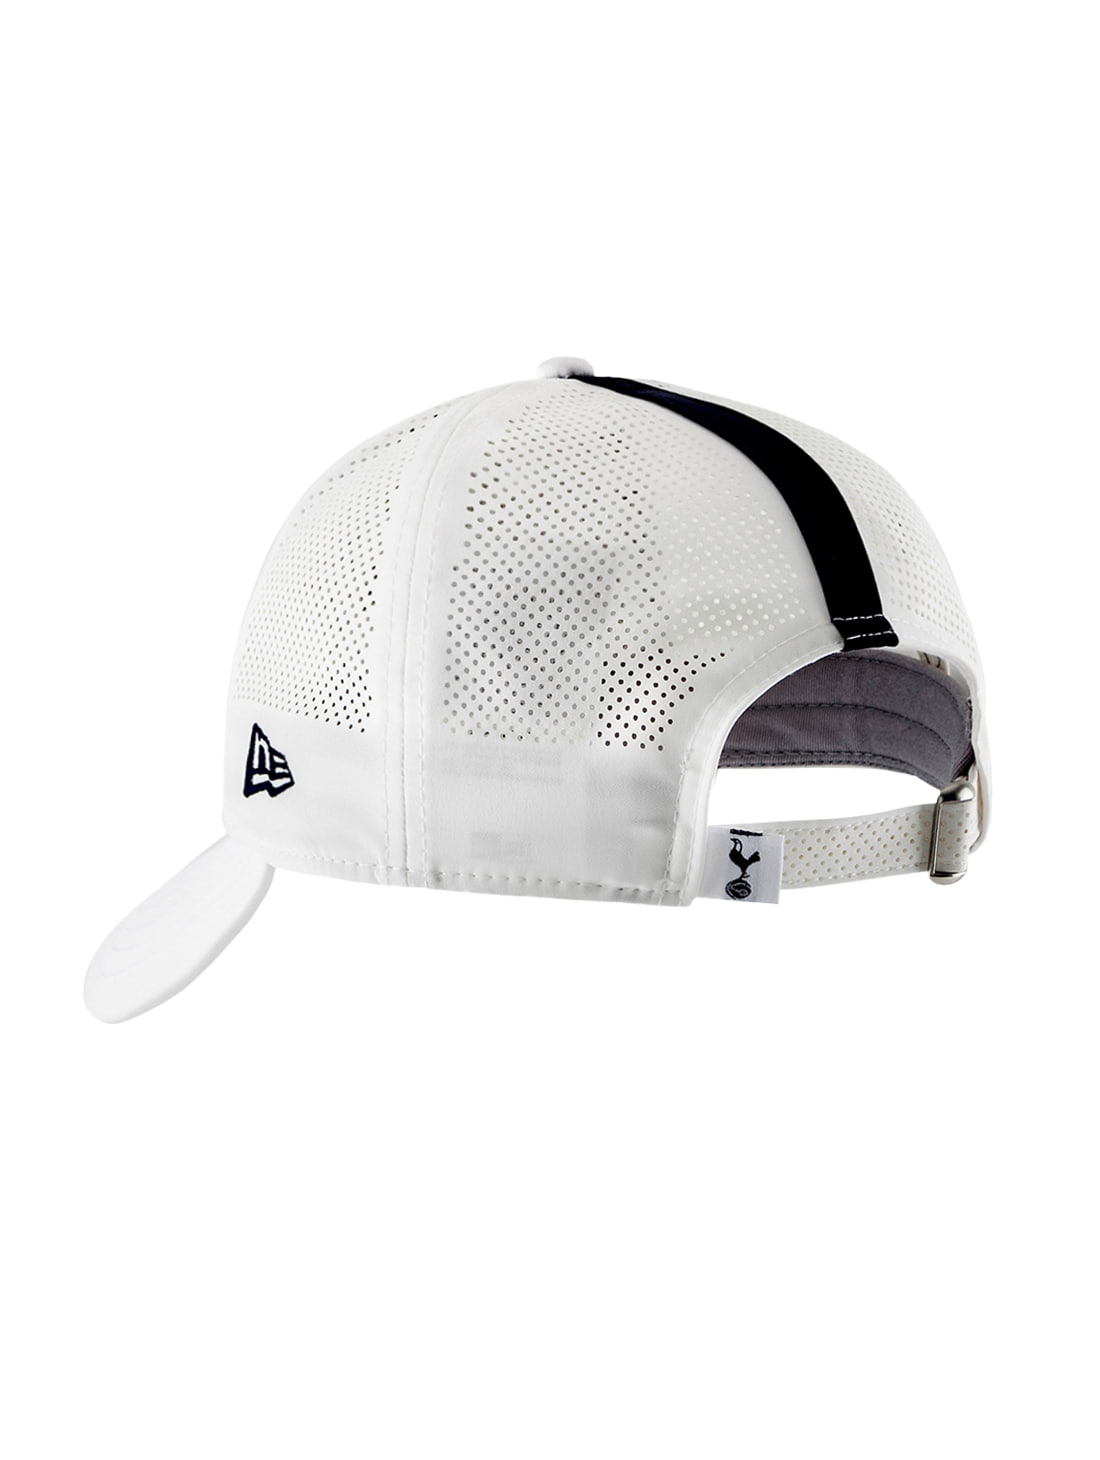 (Sold Out) TOTTENHAM PERFORATED MESH BALL CAP - WHITE